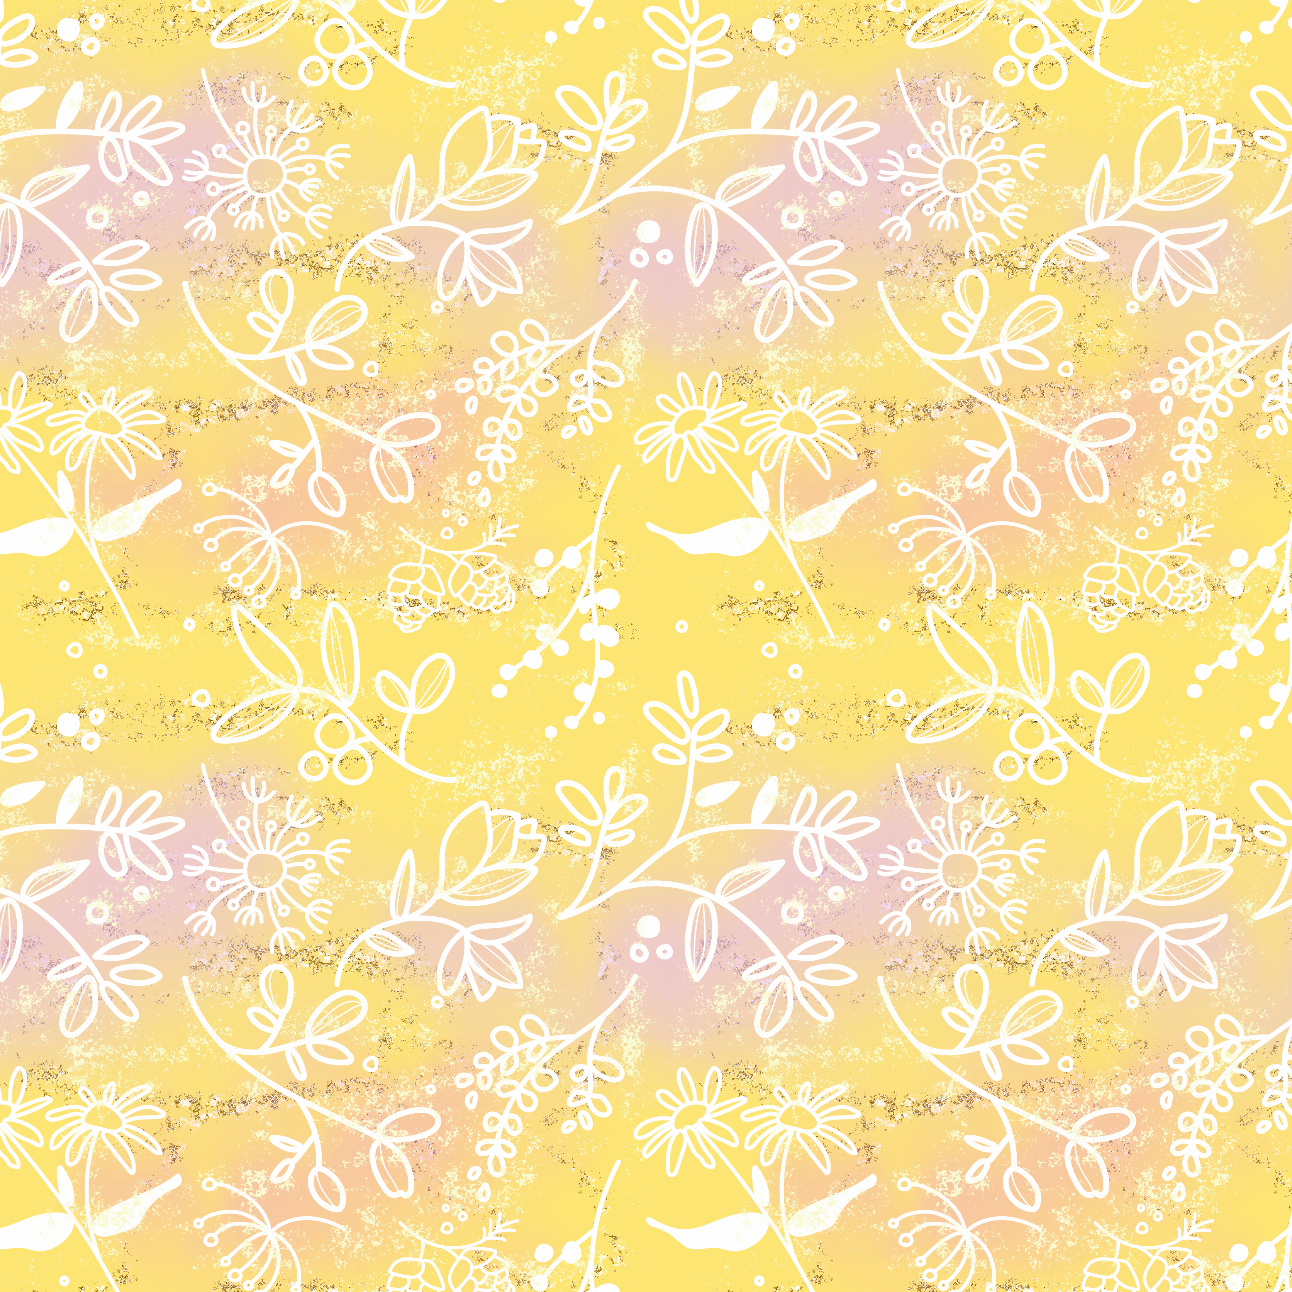 PRE ORDER -  Tangled Yellow Floral - Digital Fabric Print